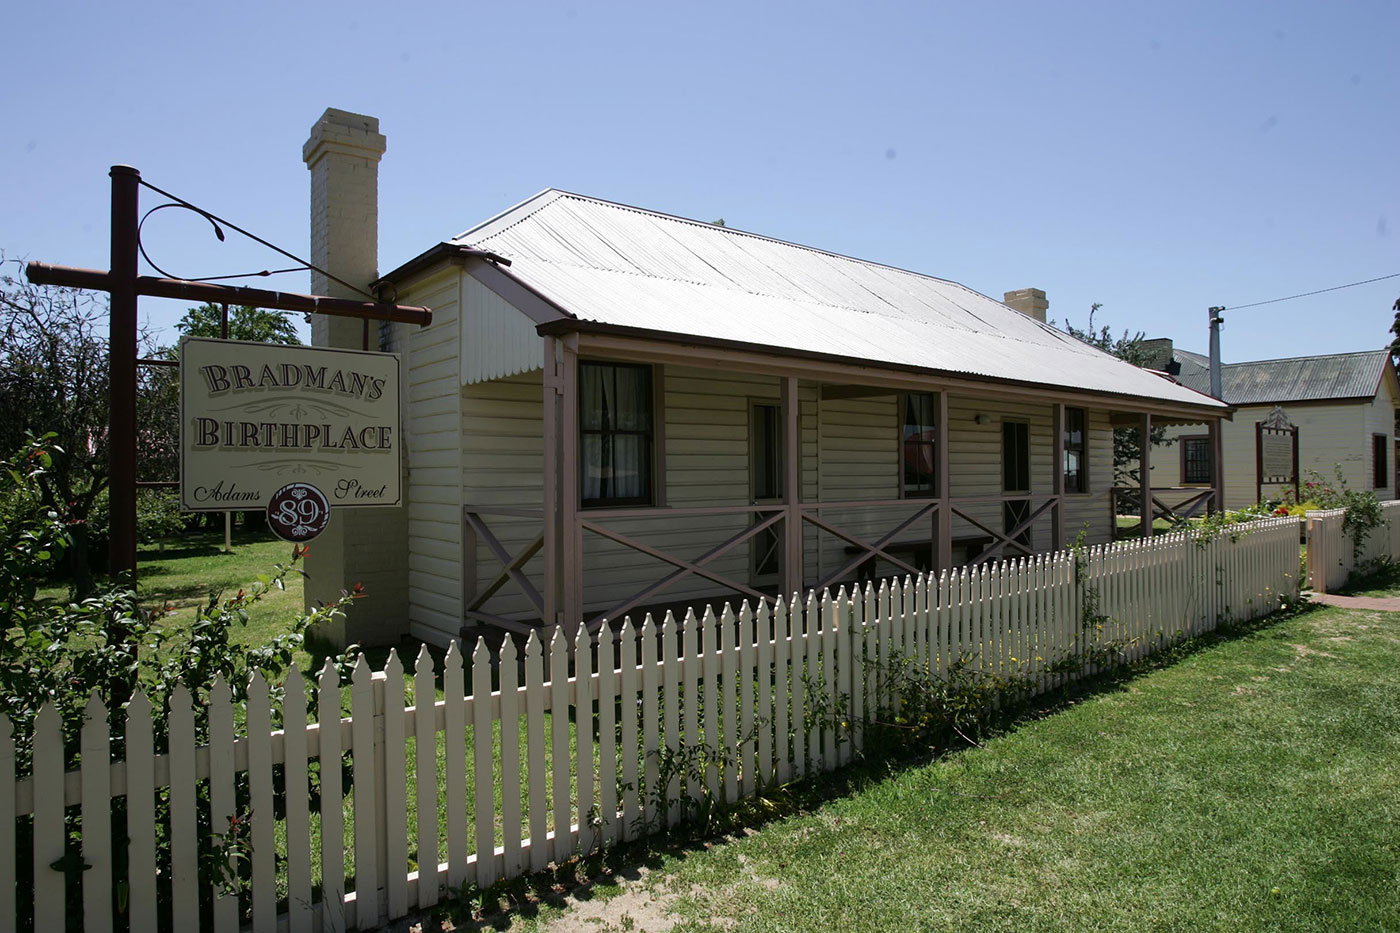 Where it all began: the cottage in Cootamundra where Bradman was born